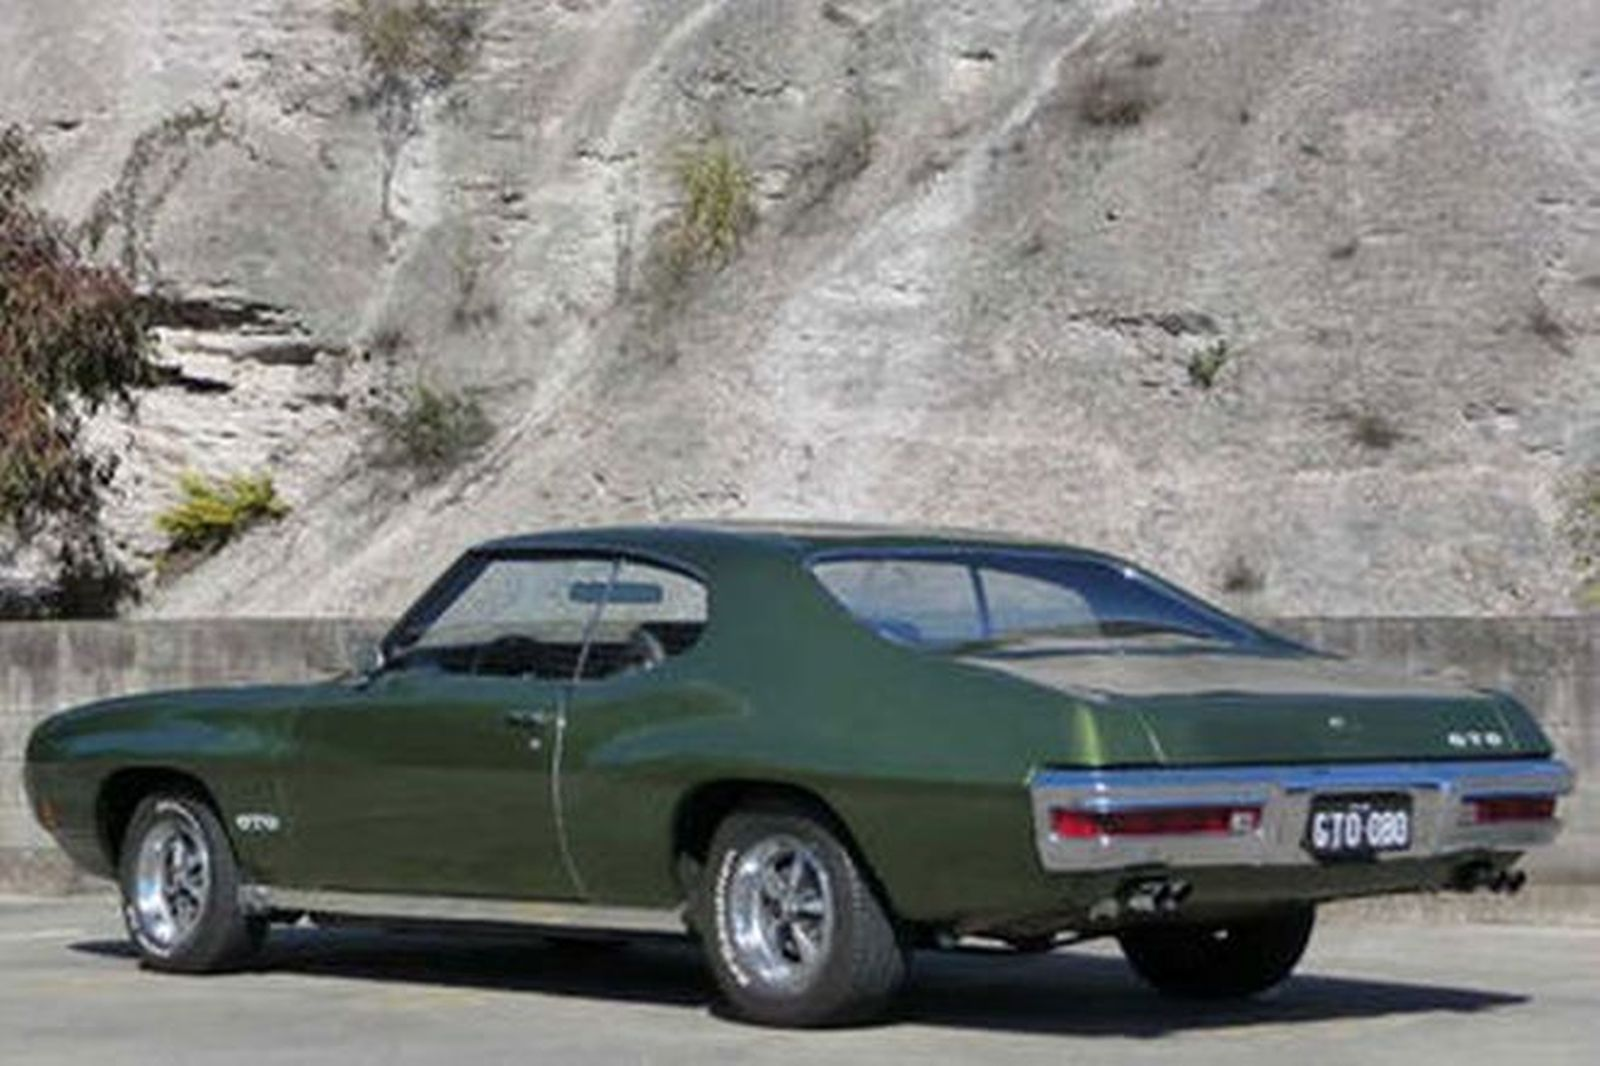 Pontiac Gto 400ci Coupe Lhd Auctions Lot 9 Shannons